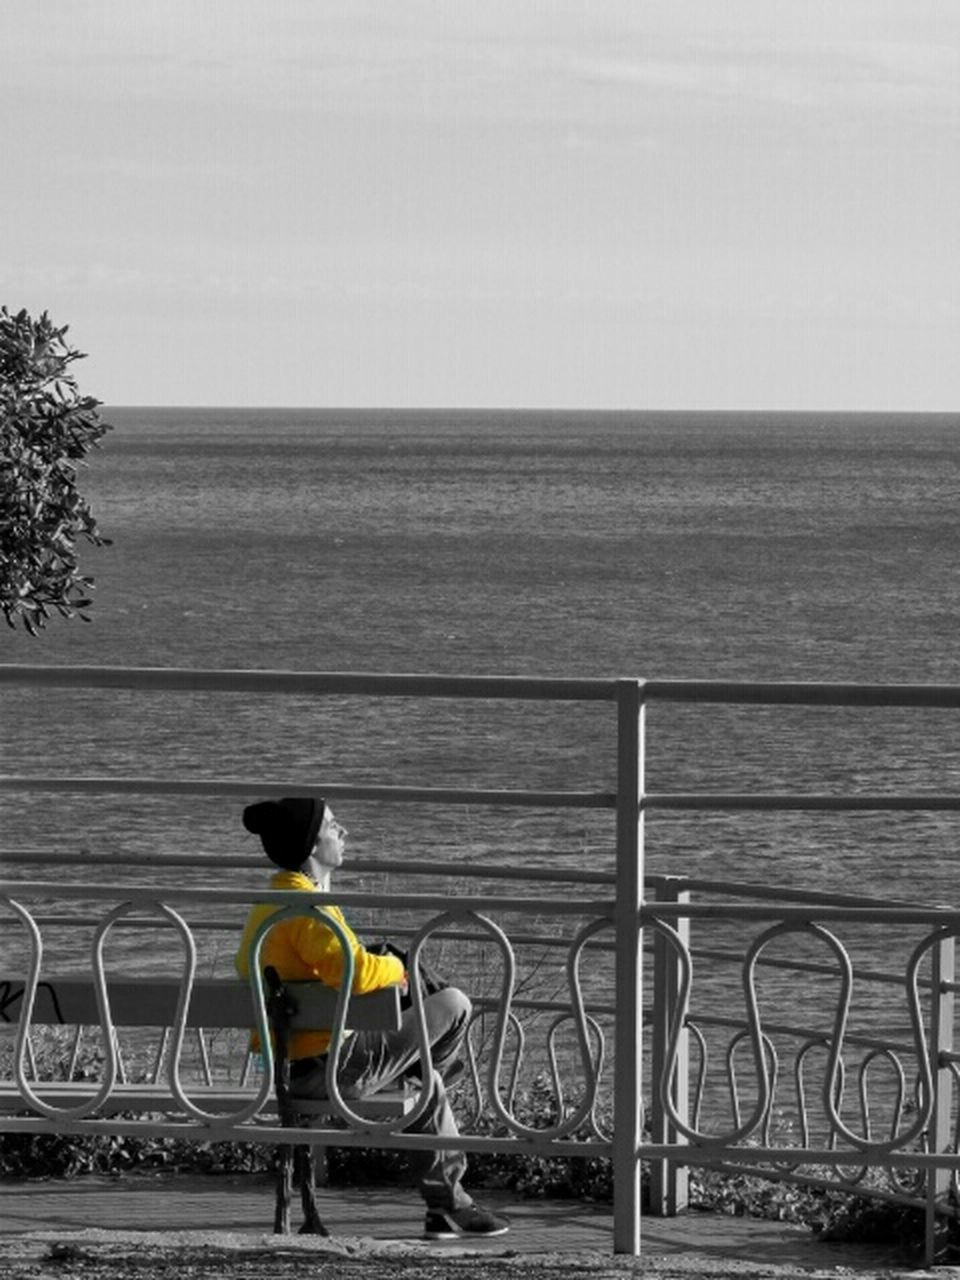 sea, railing, water, real people, one person, horizon over water, outdoors, rear view, day, standing, bicycle, men, yellow, nature, full length, sky, beauty in nature, people